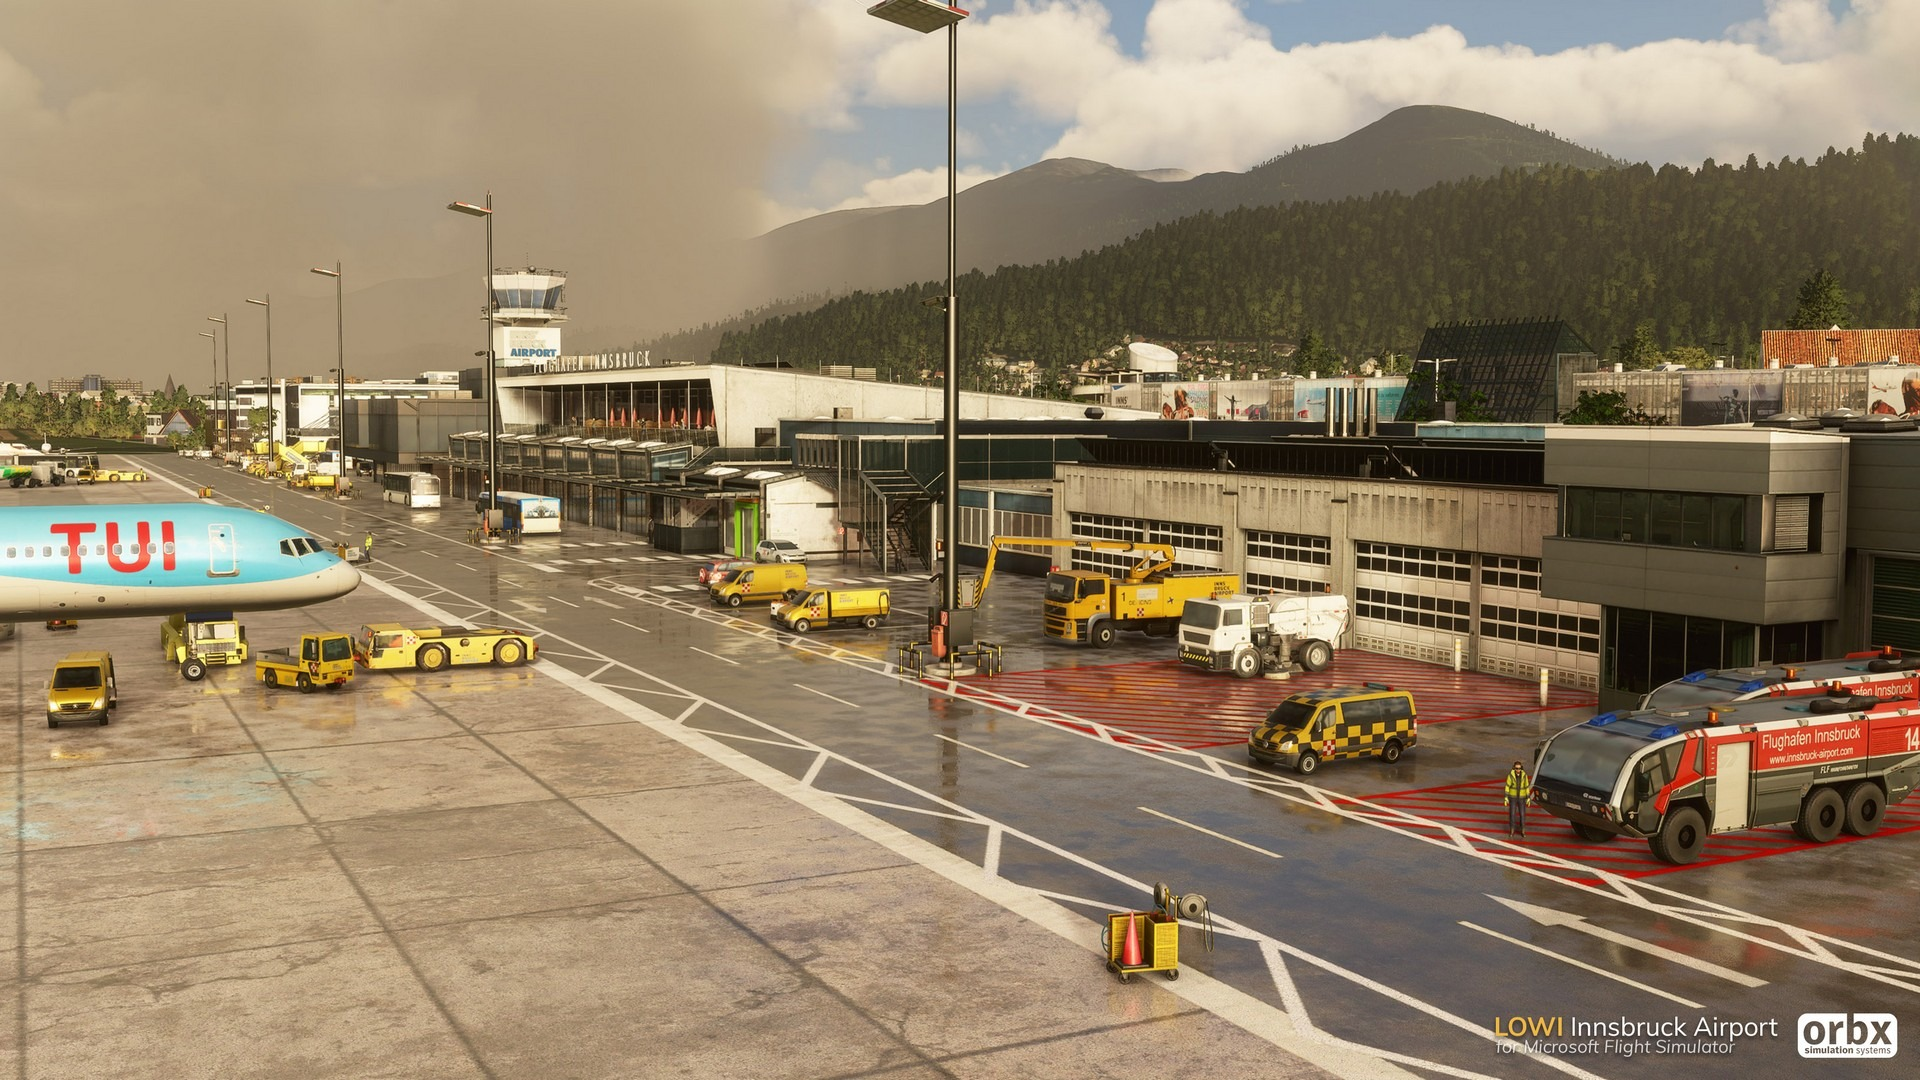 Orbx Previews Products Coming to Microsoft Flight Simulator and Pricing Strategy